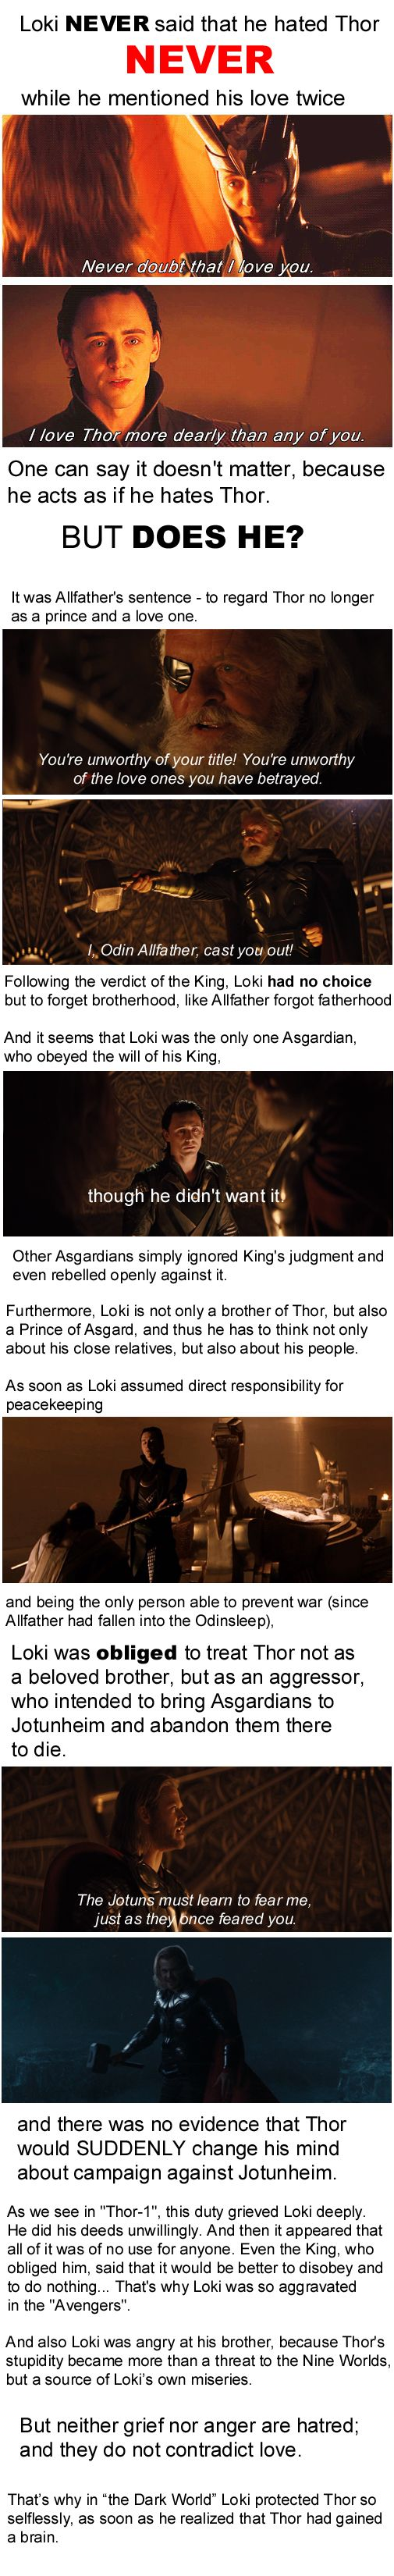 """It's widely believed that Loki hates his brother. All this """"no matter how much he said he hates Thor..."""" - it is everywhere in the fandom. But the fact is that he NEVER said it."""